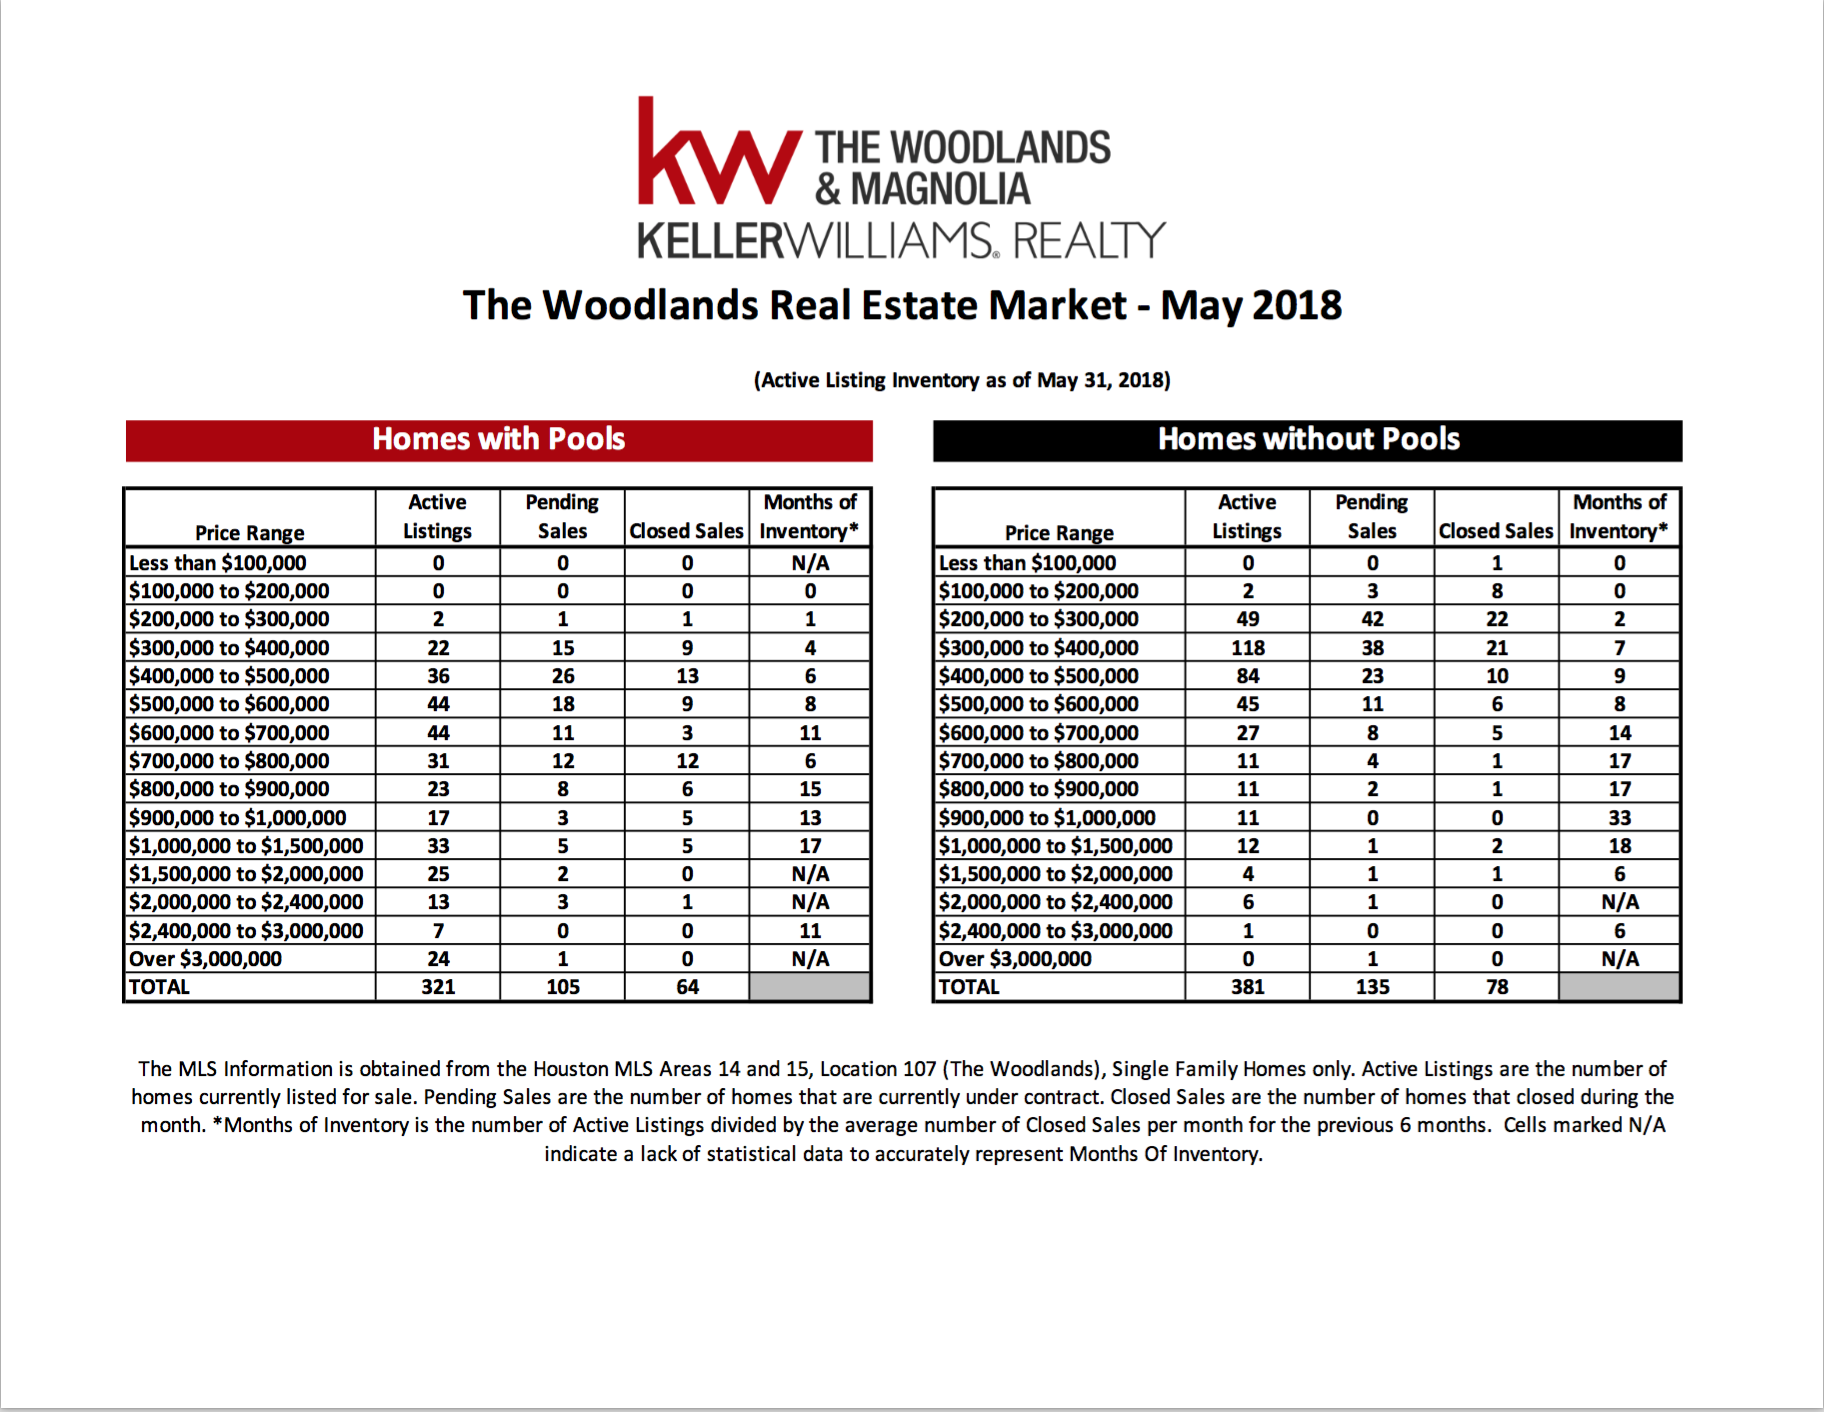 , May 2018 Marketwatch Report – The Woodlands, KW Woodlands